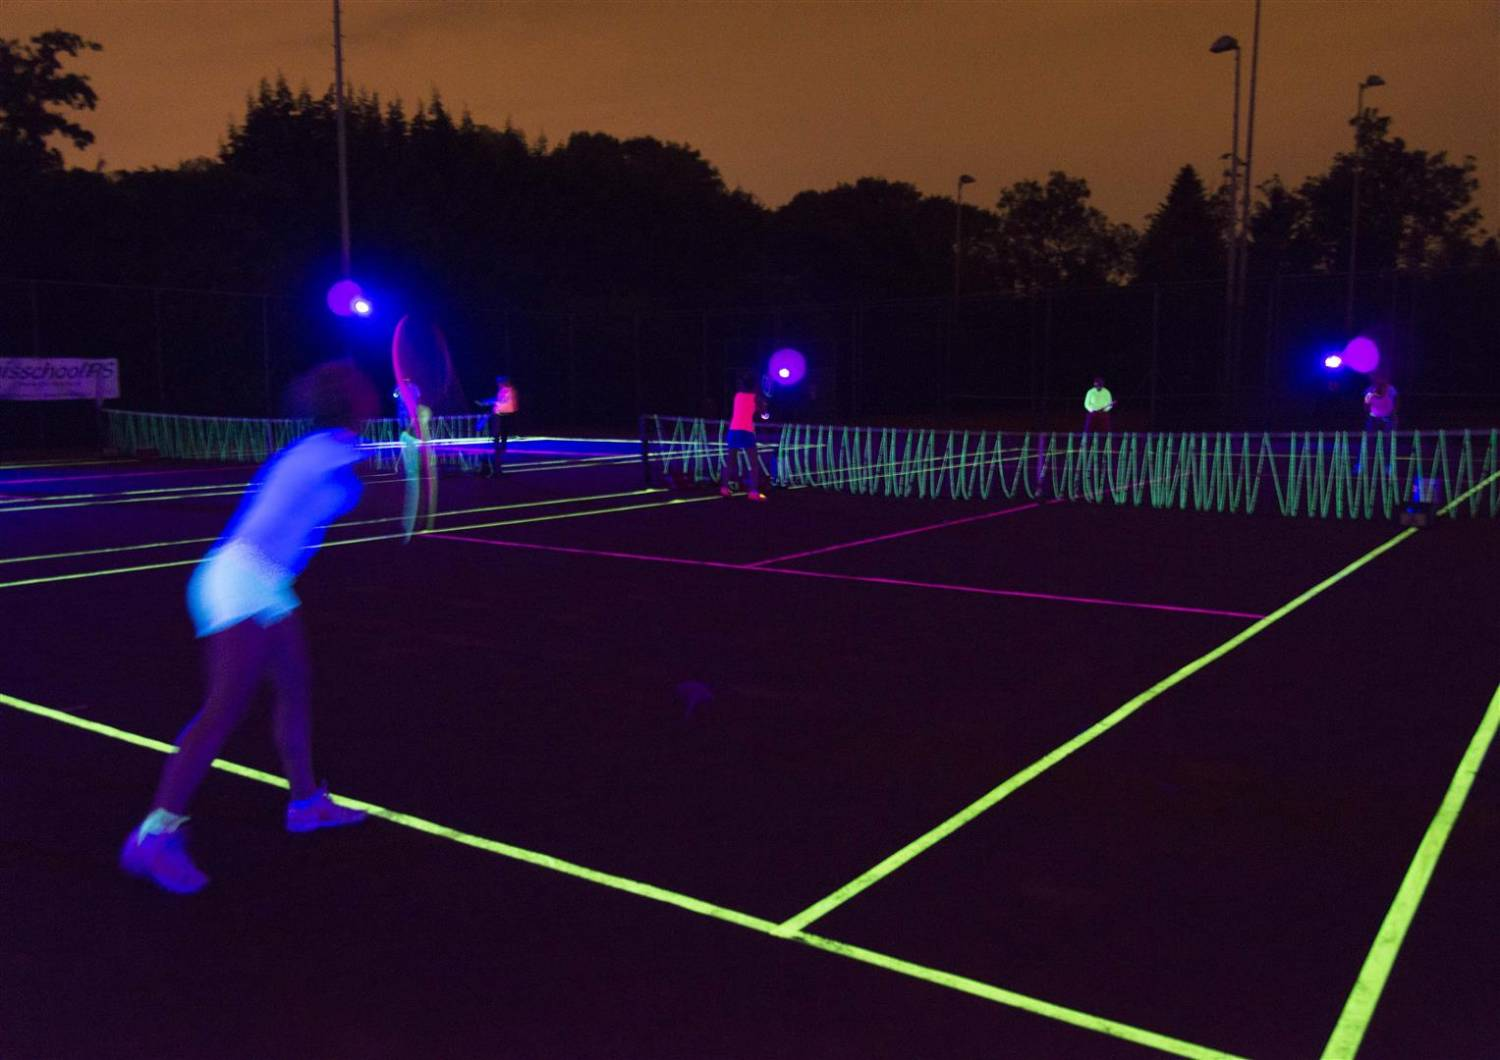 Glow in the dark tennis